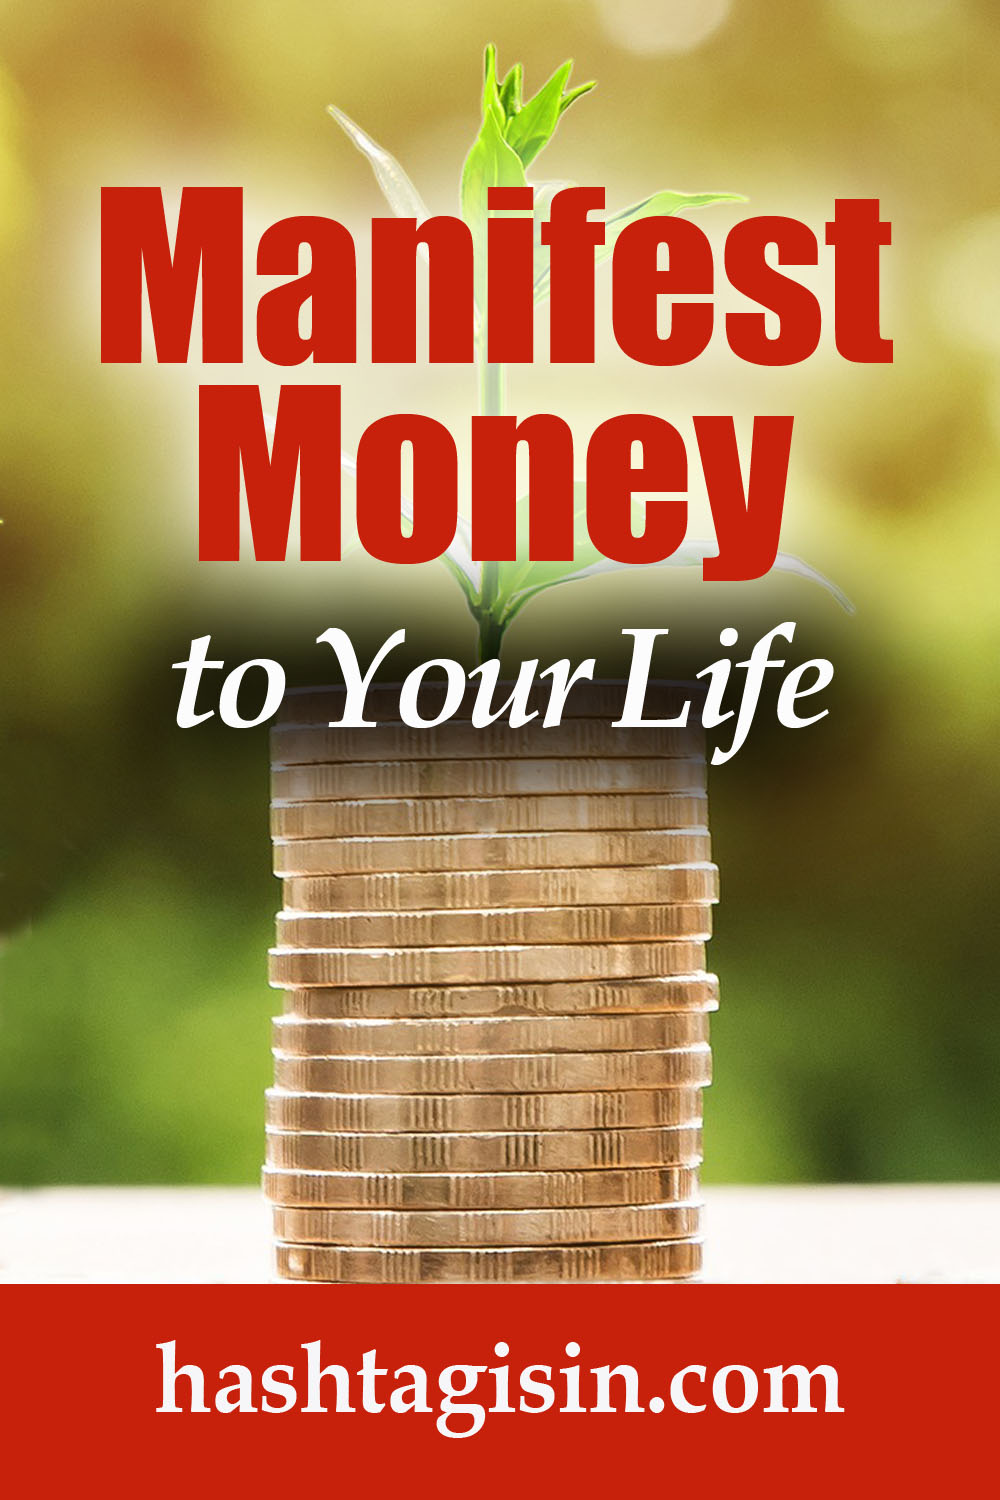 Manifest Money in Your Life.jpg